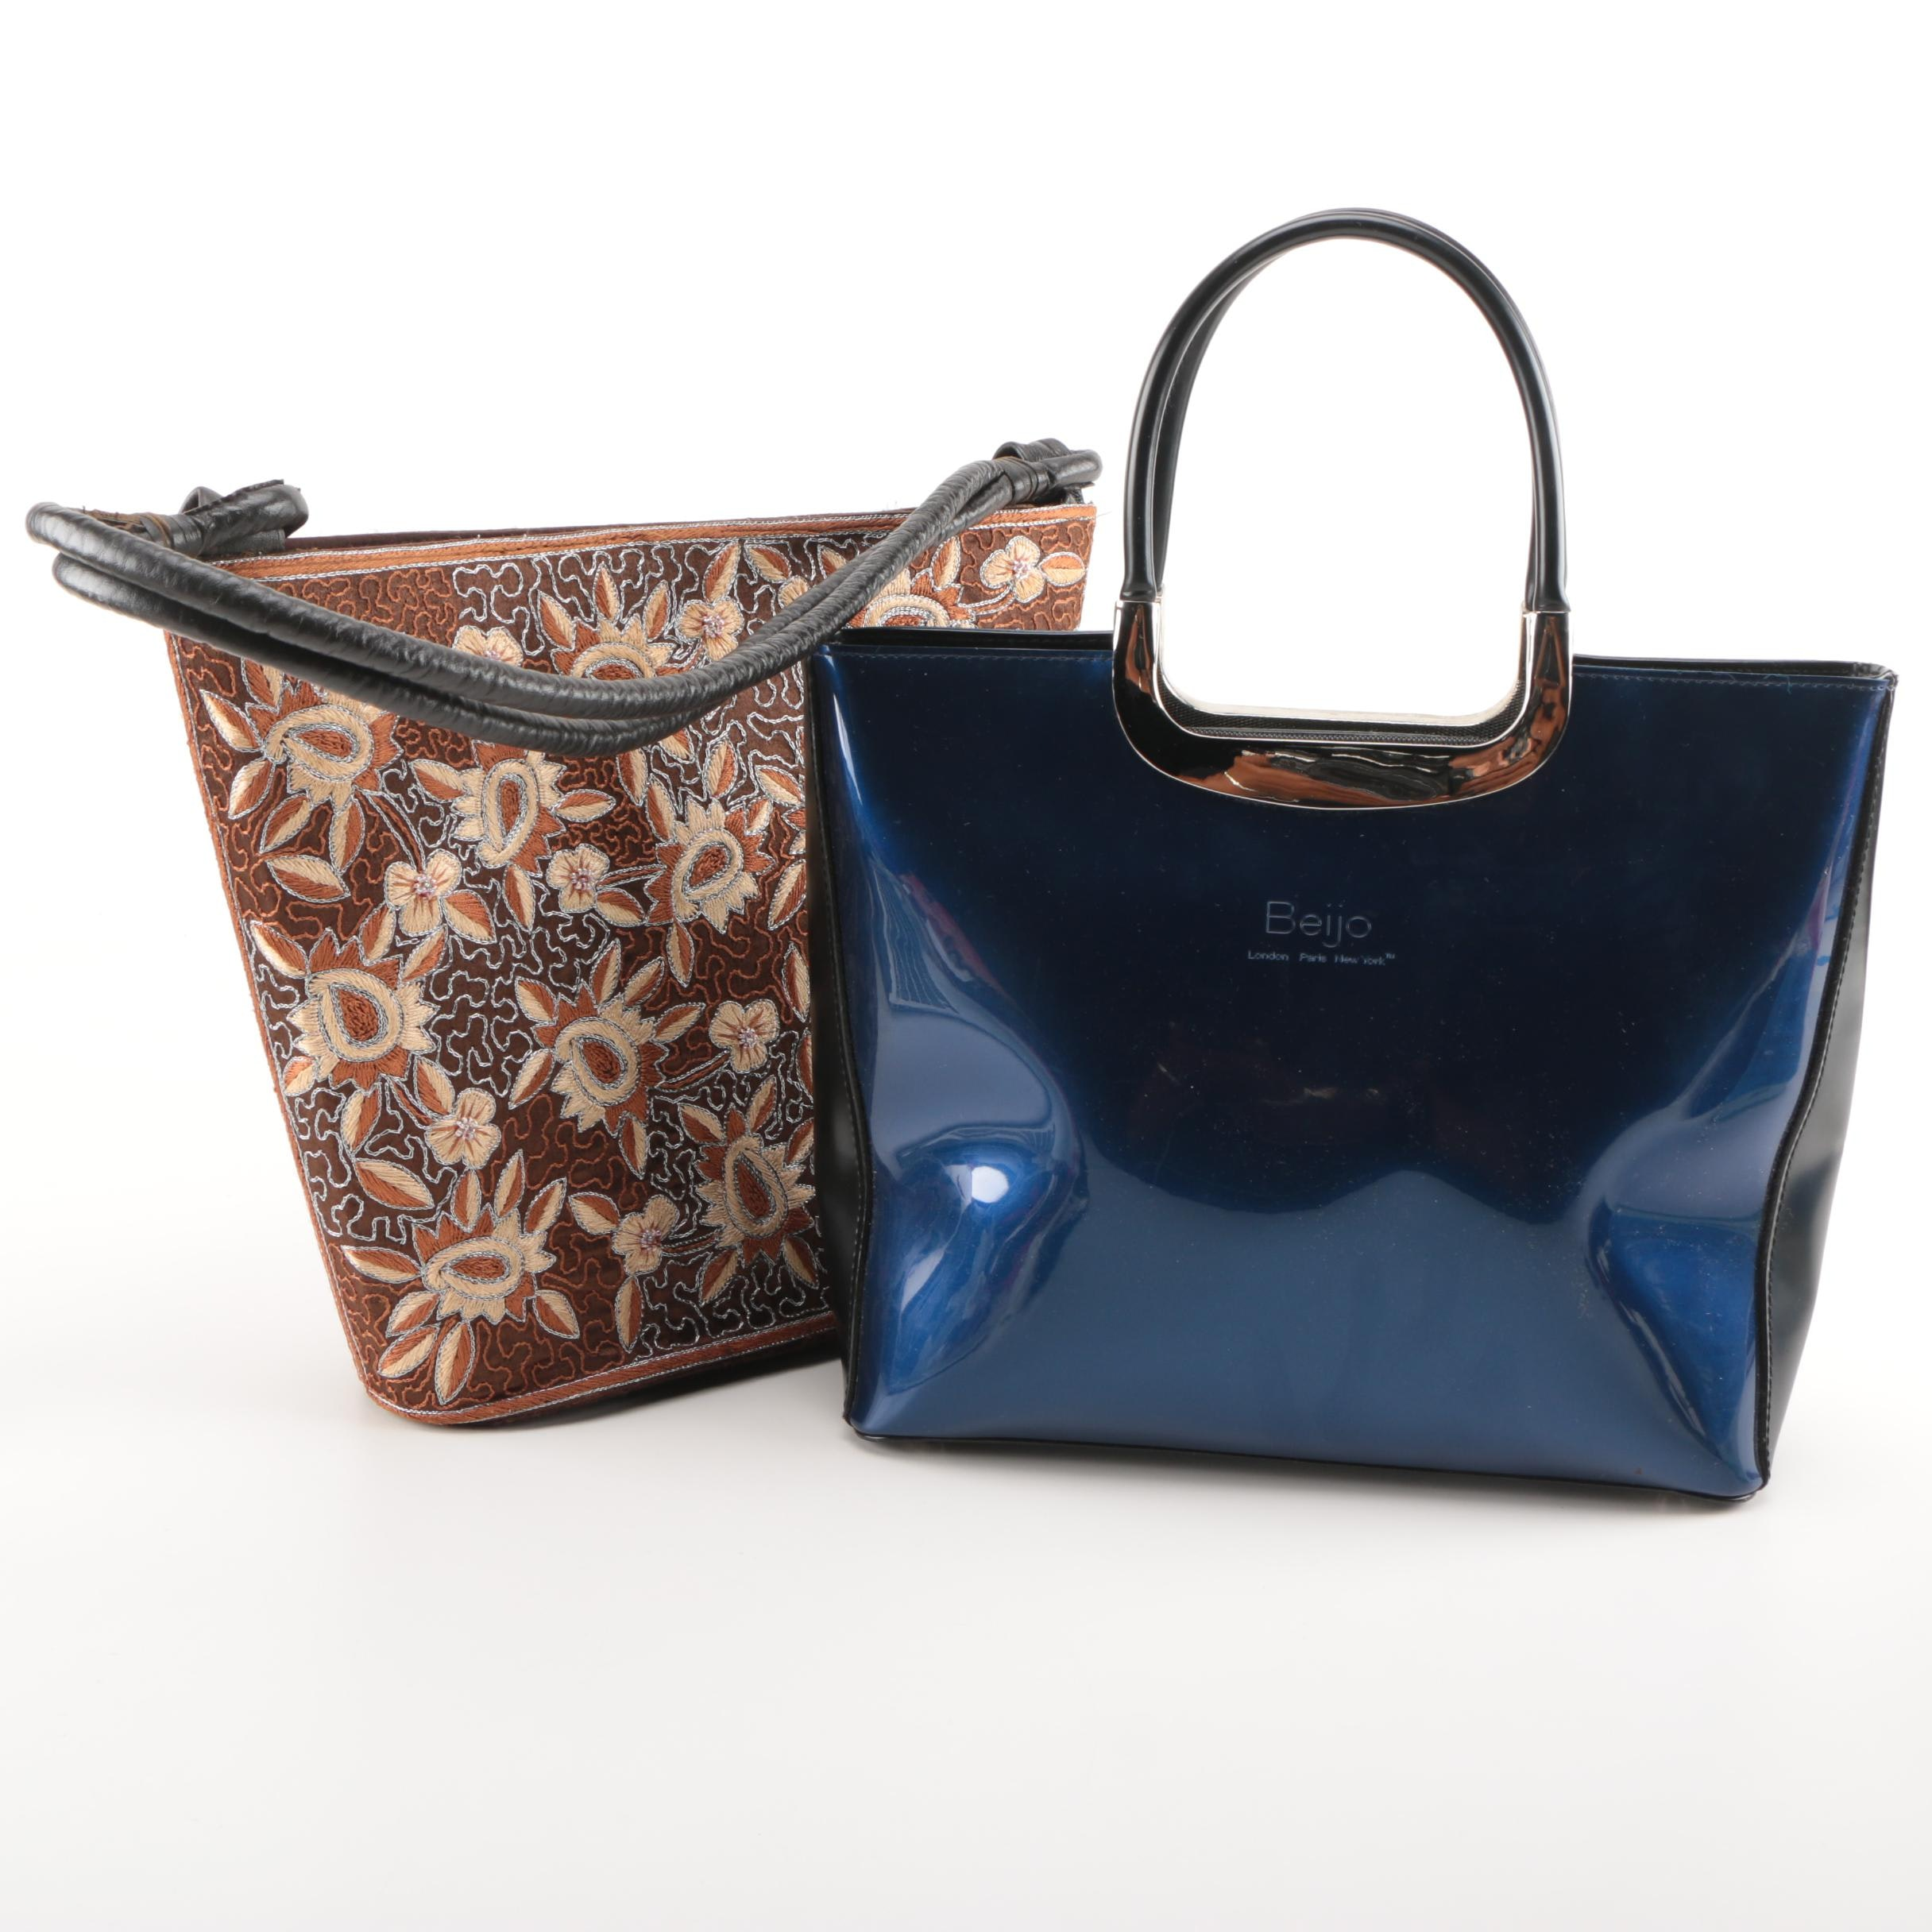 Embroidered and Leather Tote's Featuring Beijo